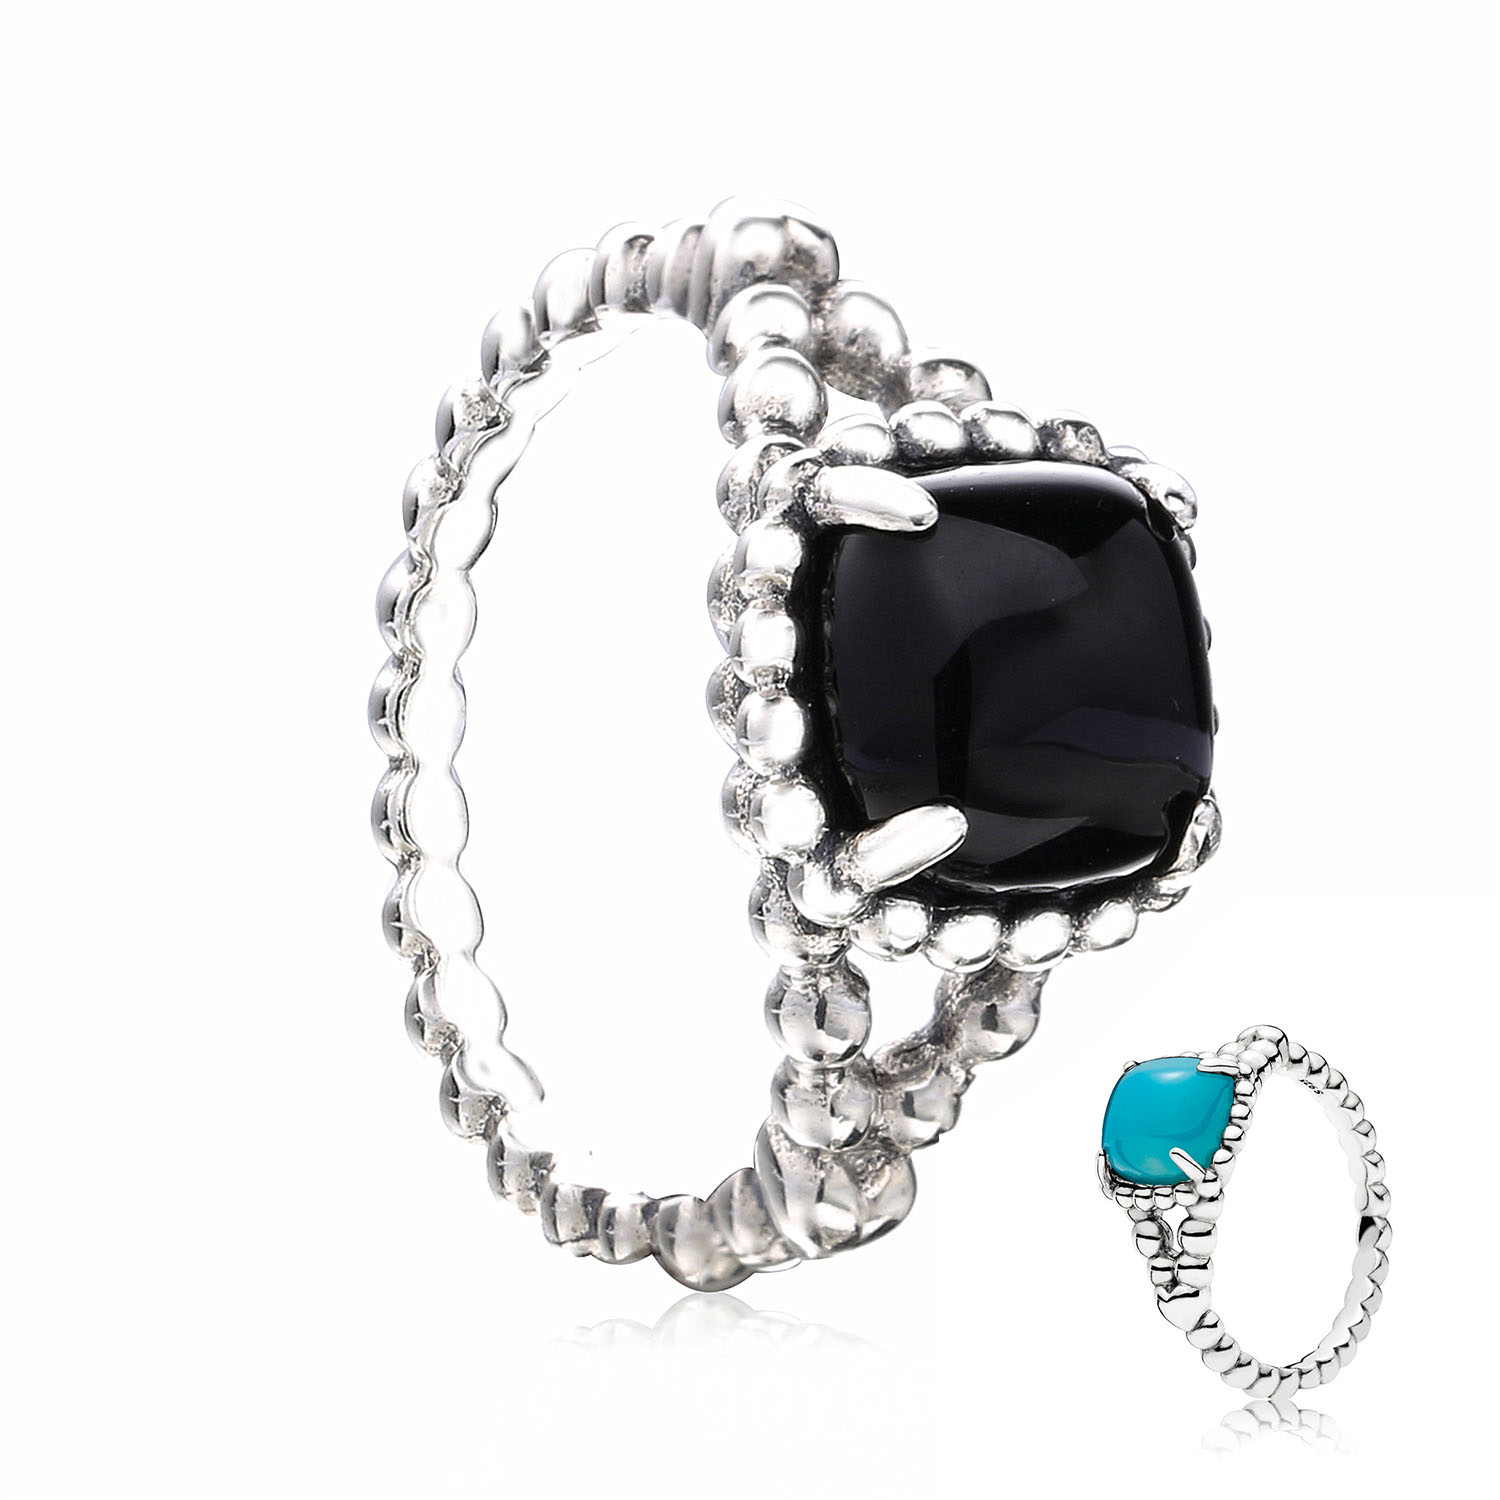 54d2d4792 2018 Summer Collection 925 Sterling Silver Original Black Vibrant Spirit  Europe Ring For Women Gift Charm DIY Jewelry 197188NCK-in Wedding Bands  from ...